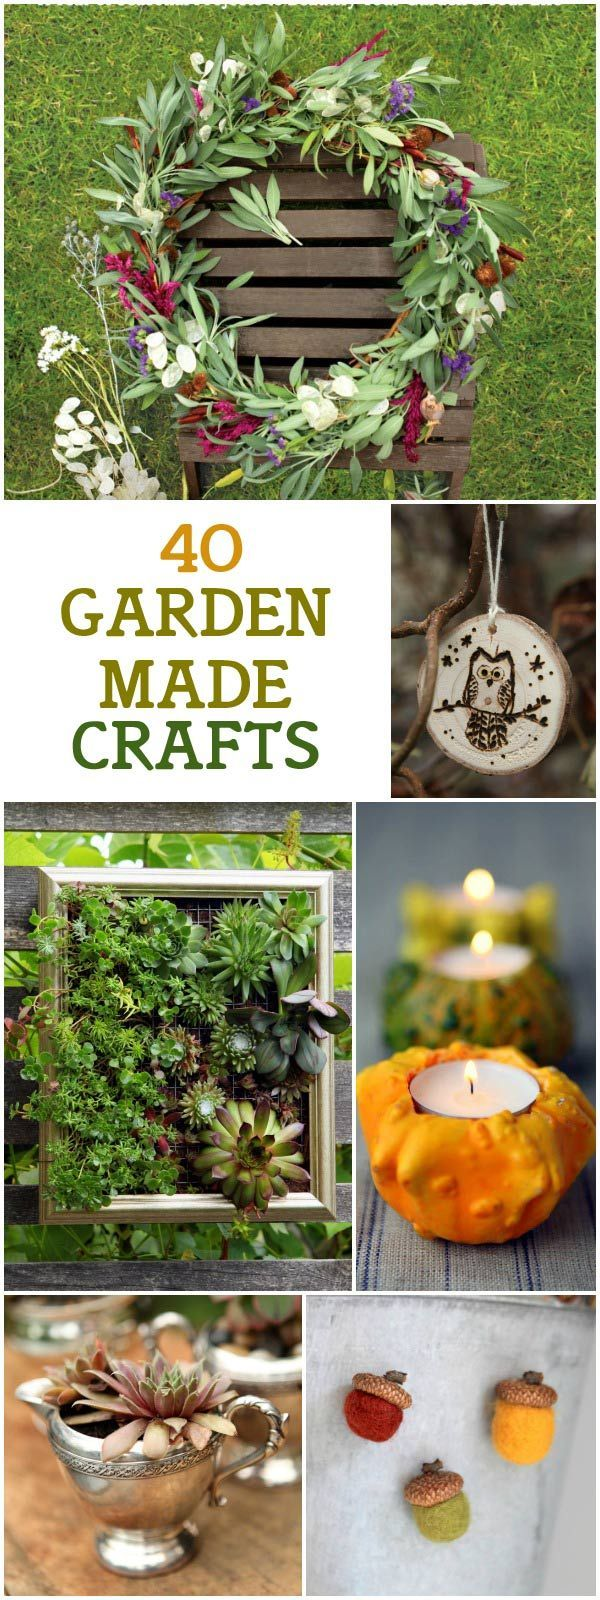 Garden Made: A Year of Seasonal Projects to Beautify Your Garden and Your Life by Stephanie Rose includes 40 down-to-earth ideas for inspired garden crafts, including containers, handmade gifts, outdoor lighting, holiday decorations, and more.